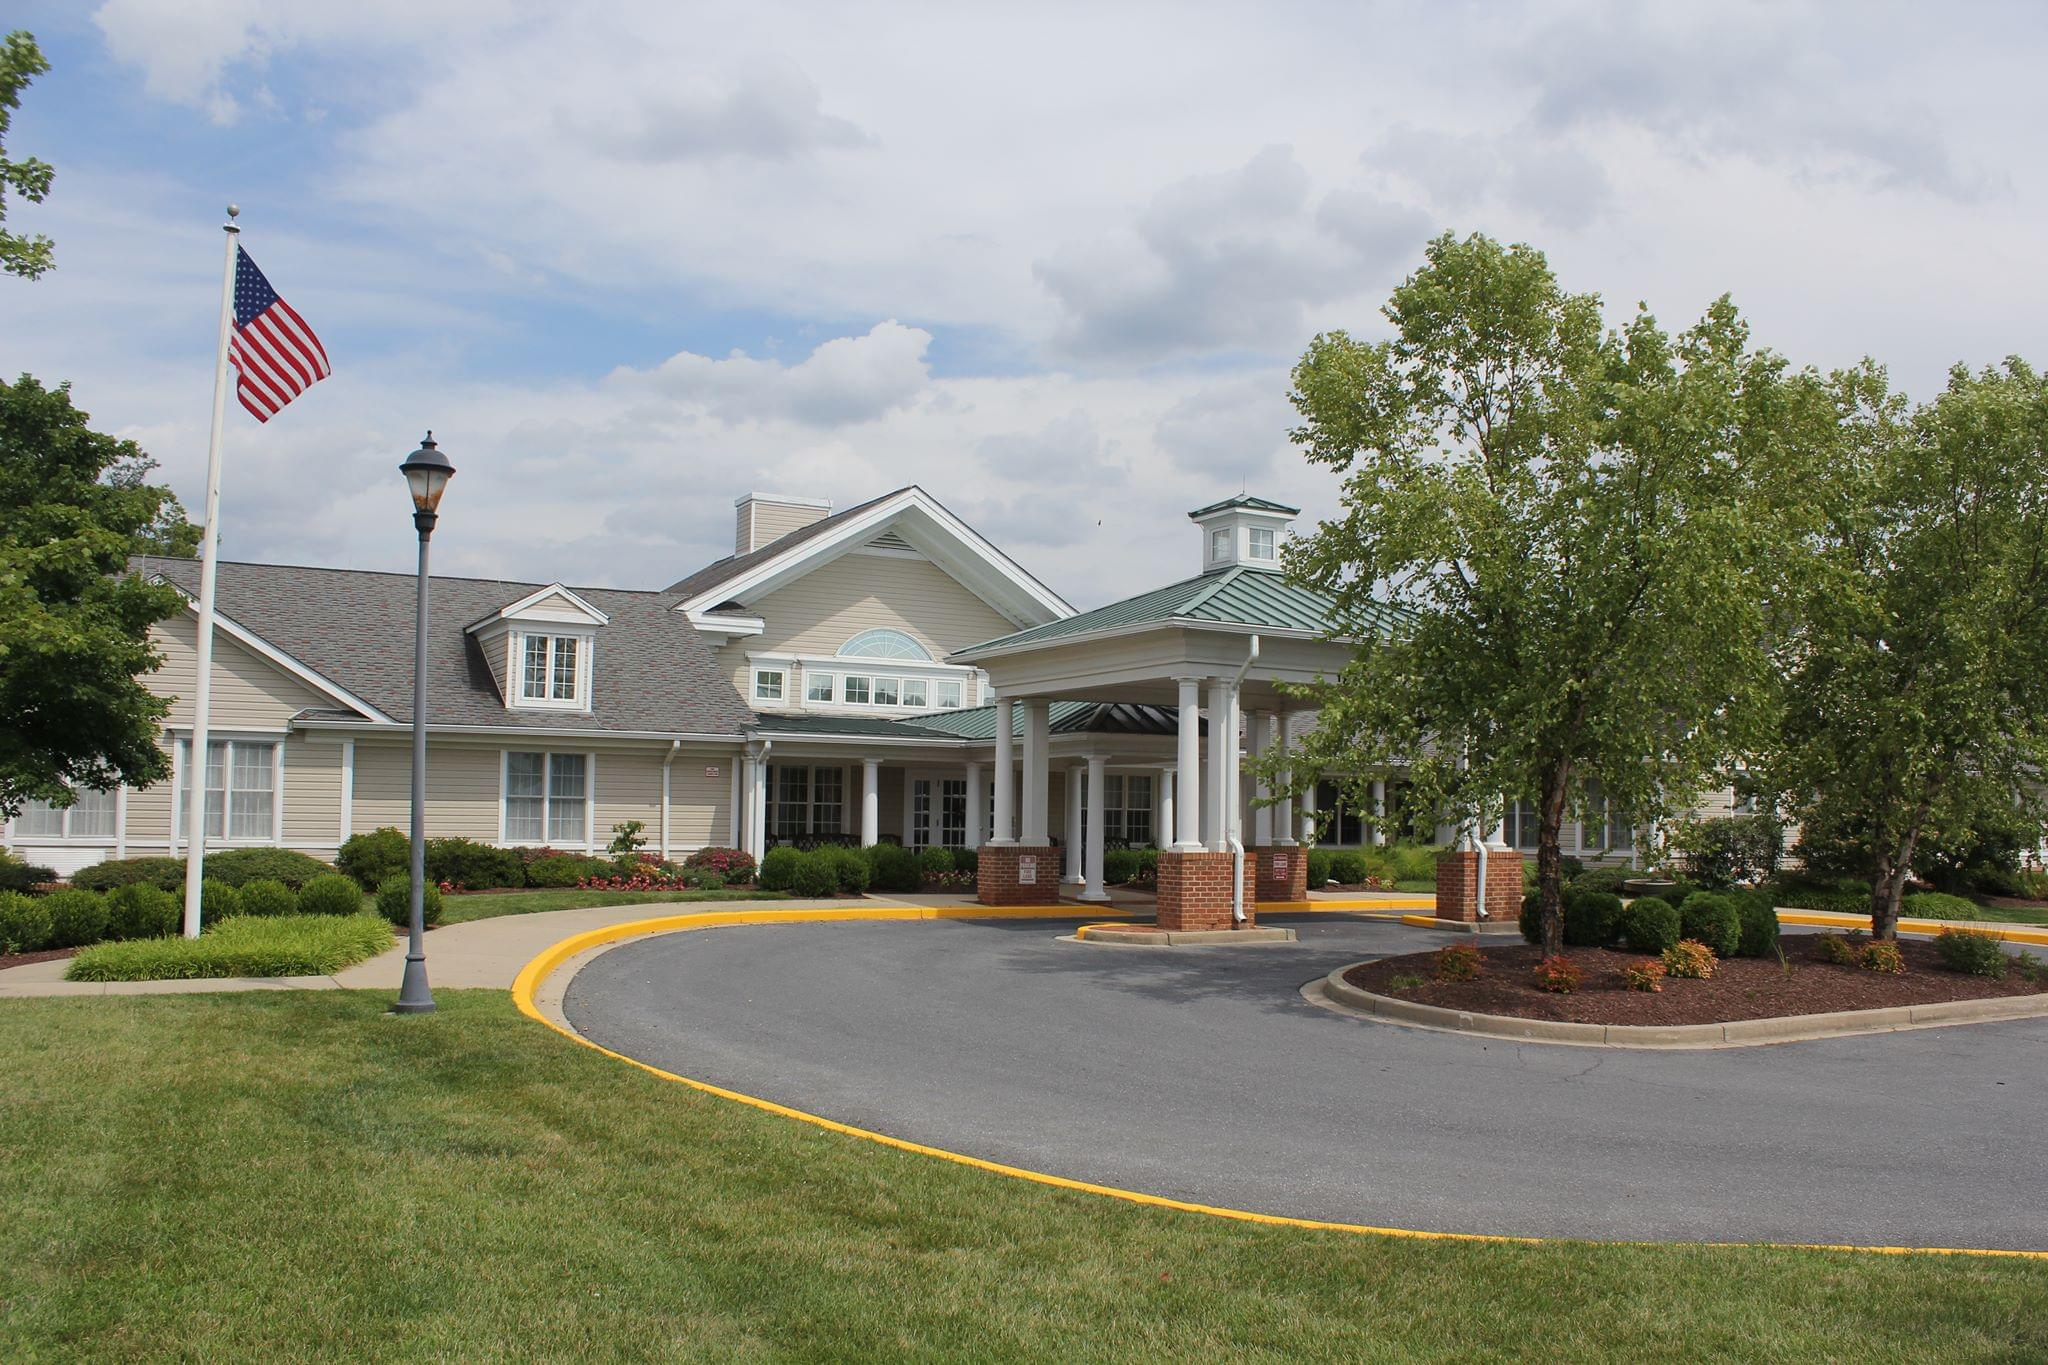 COVID-19 Cases Reported At HeartFields Assisted Living